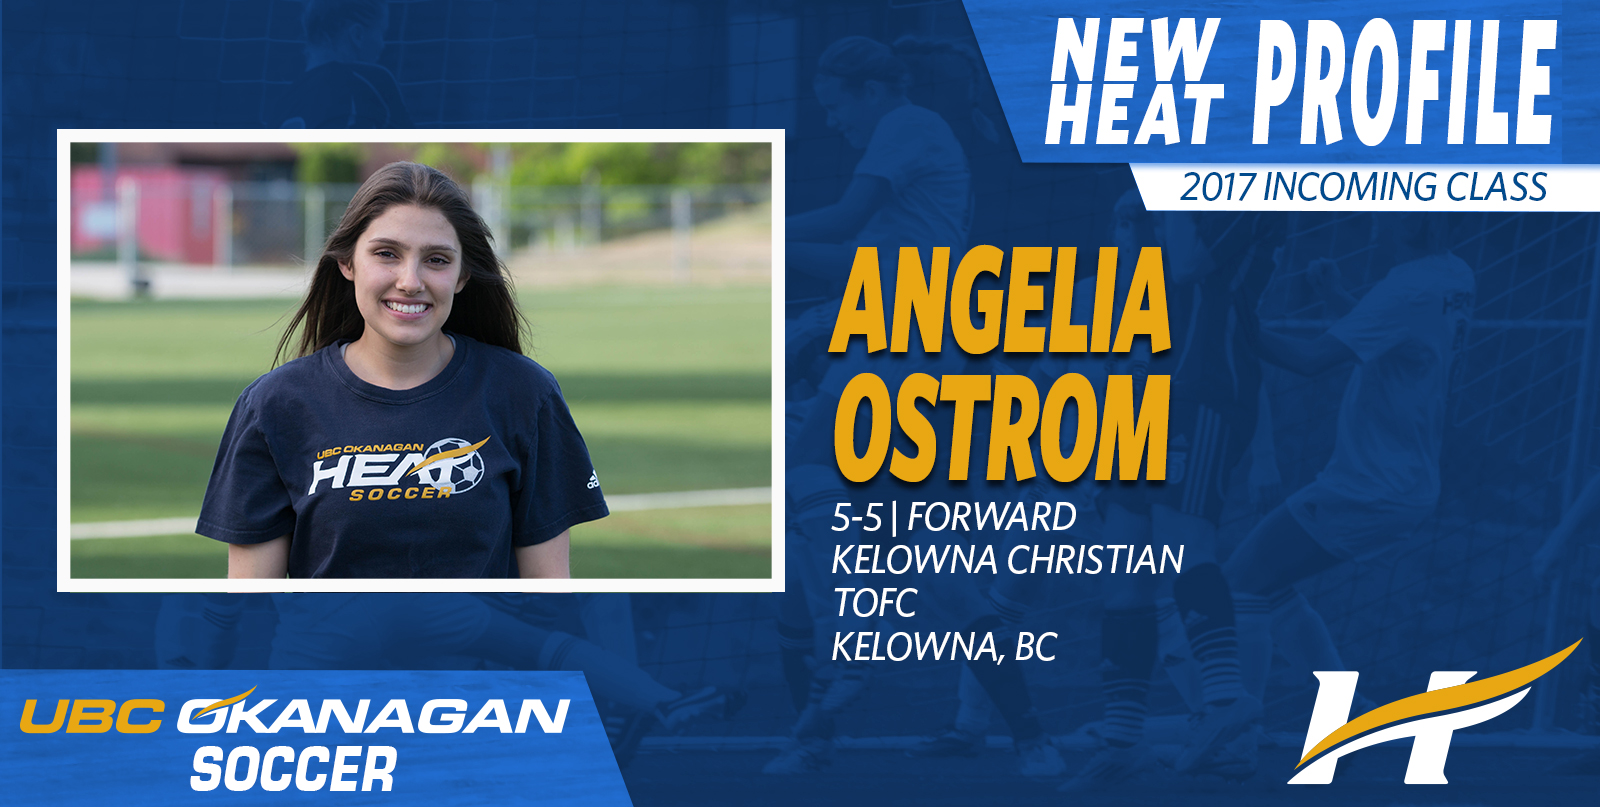 Angelia Ostrom a local outstanding striker will add depth to UBC Okanagan this fall